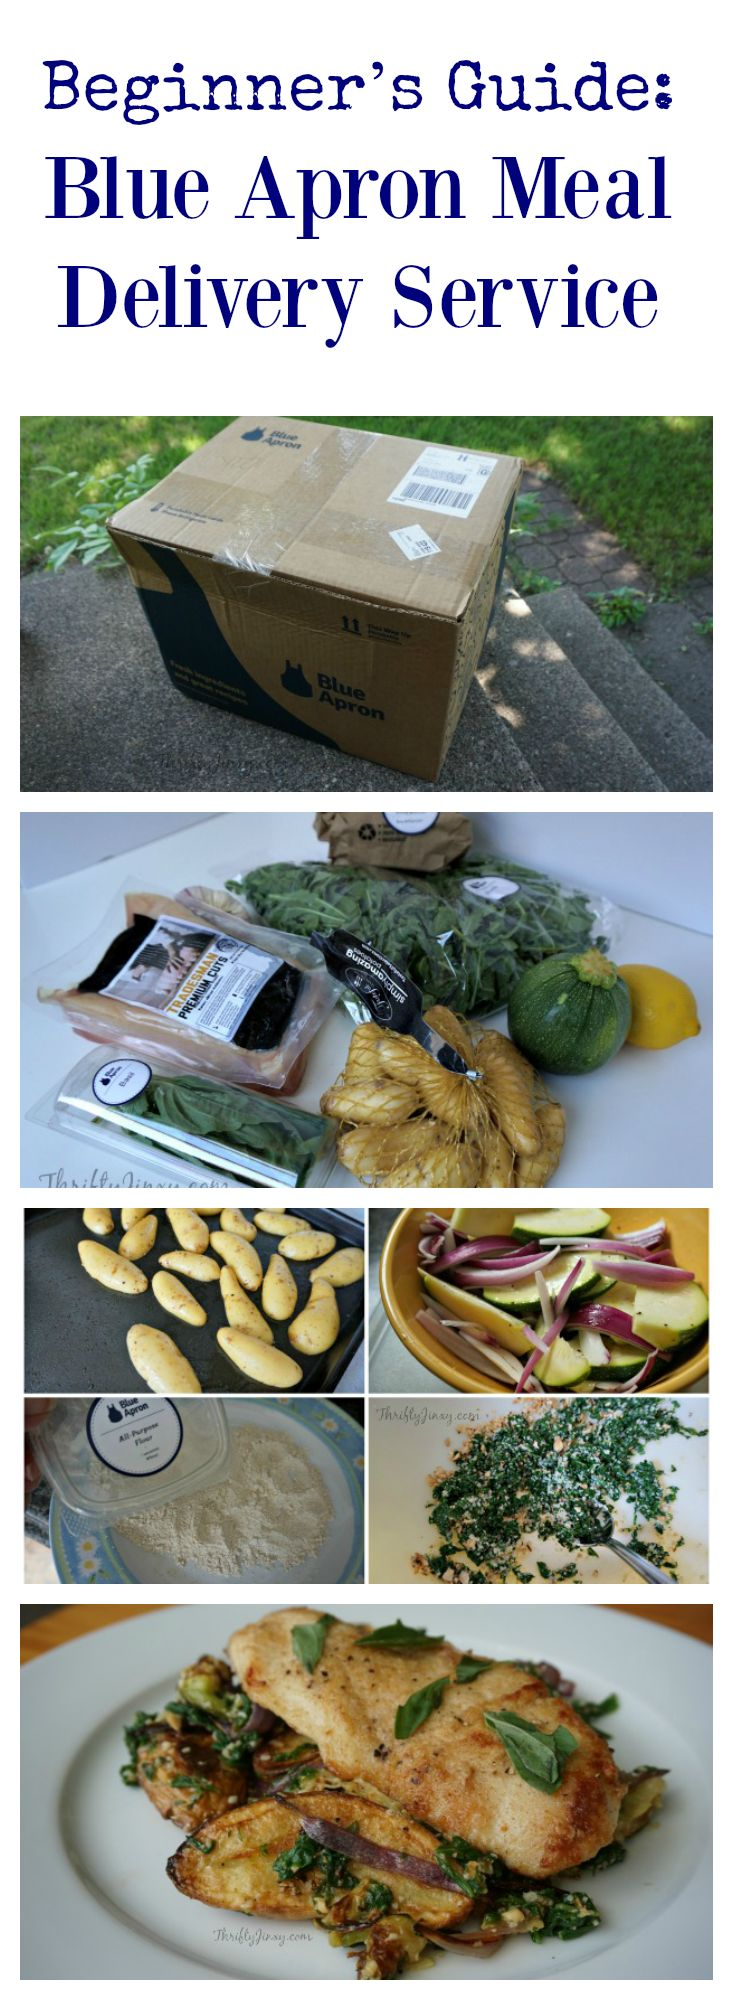 Beginner's Guide: Blue Apron Meal Delivery Service - Thrifty Jinxy